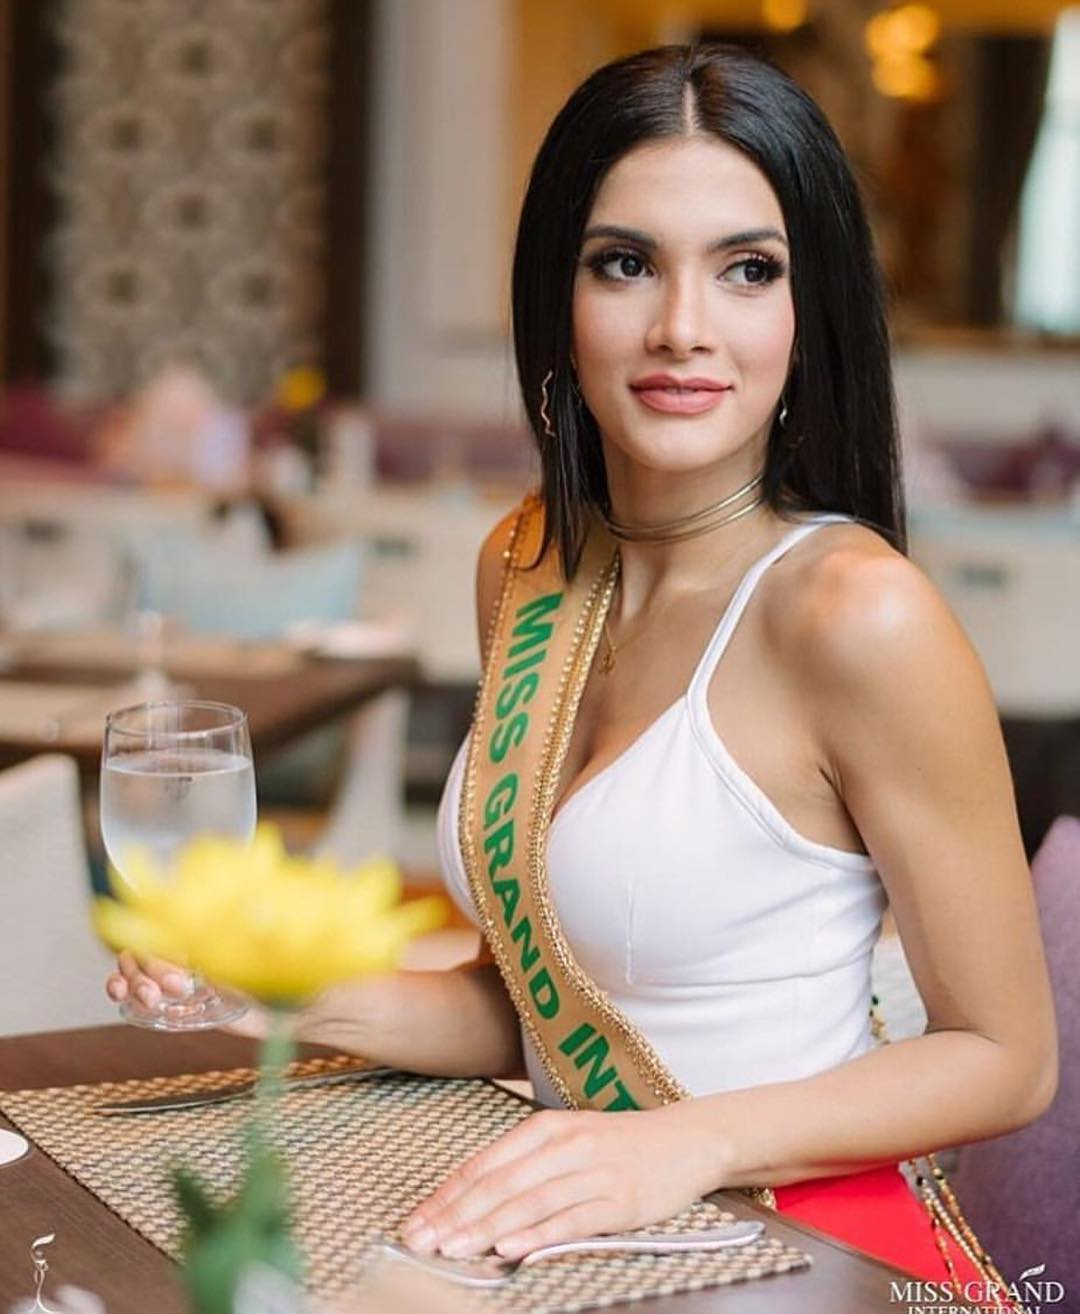 candidatas a miss grand brasil 2019. final: 28 feb. - Página 2 Rurnch2m